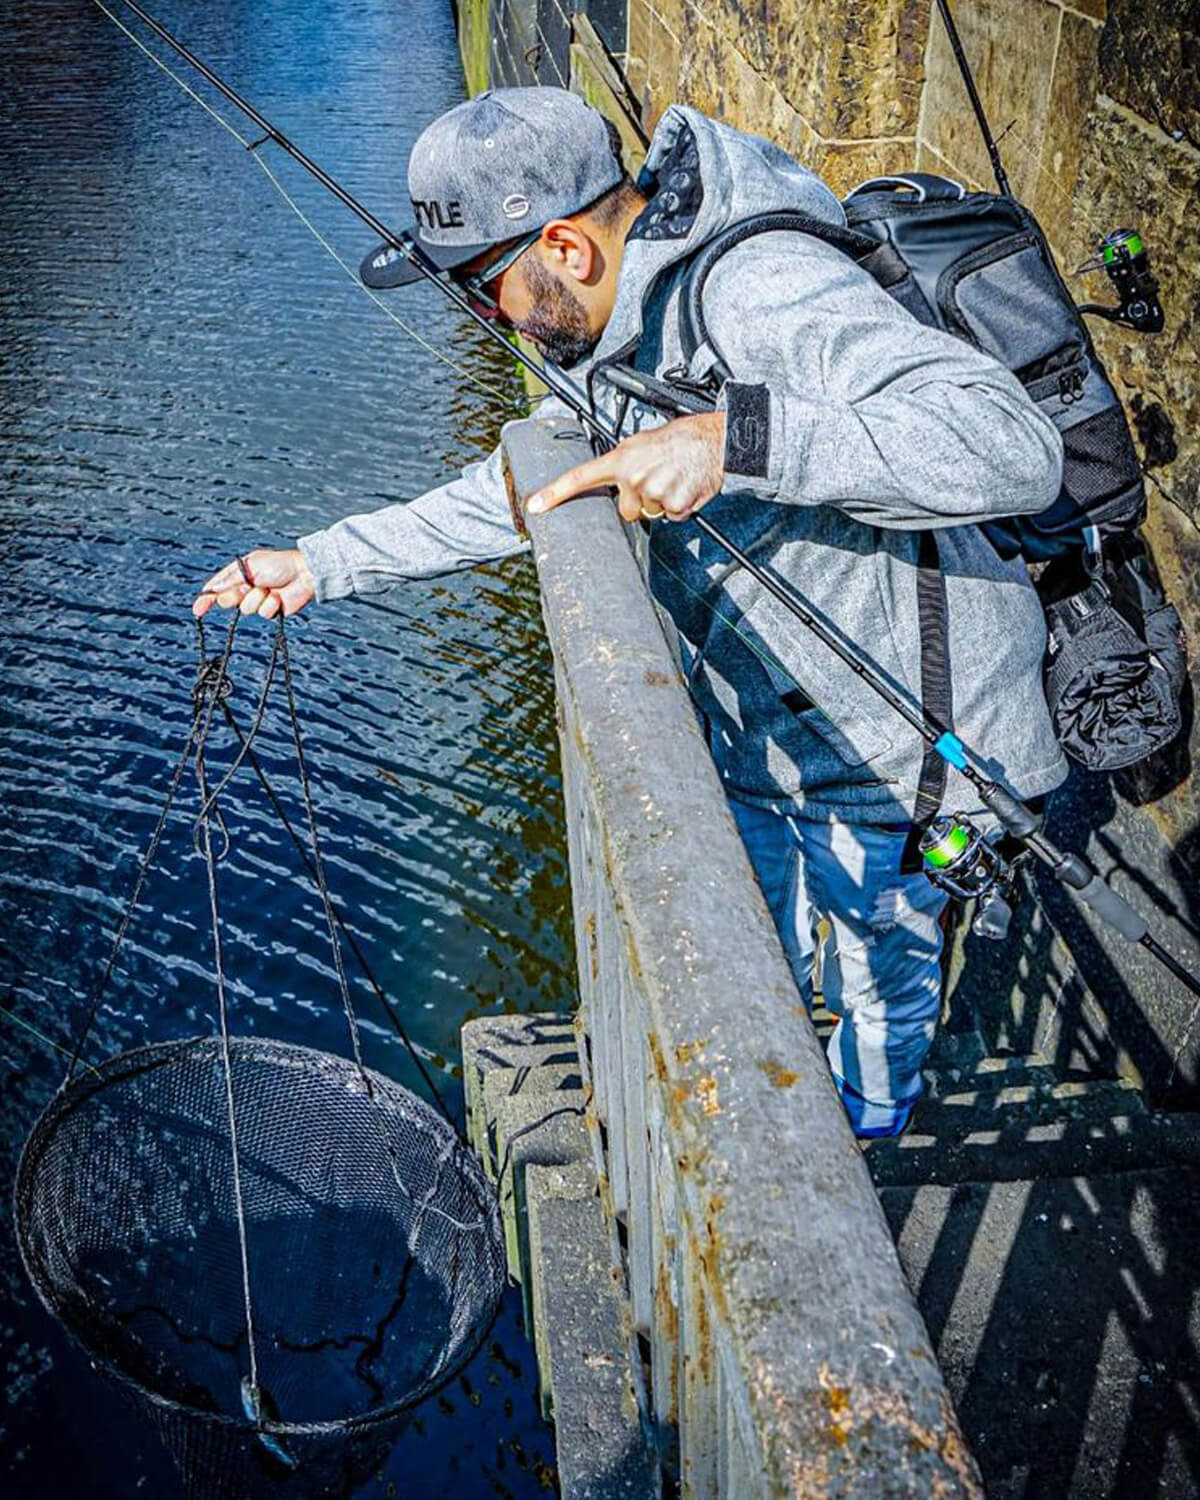 Street_Fishing_03_Blog